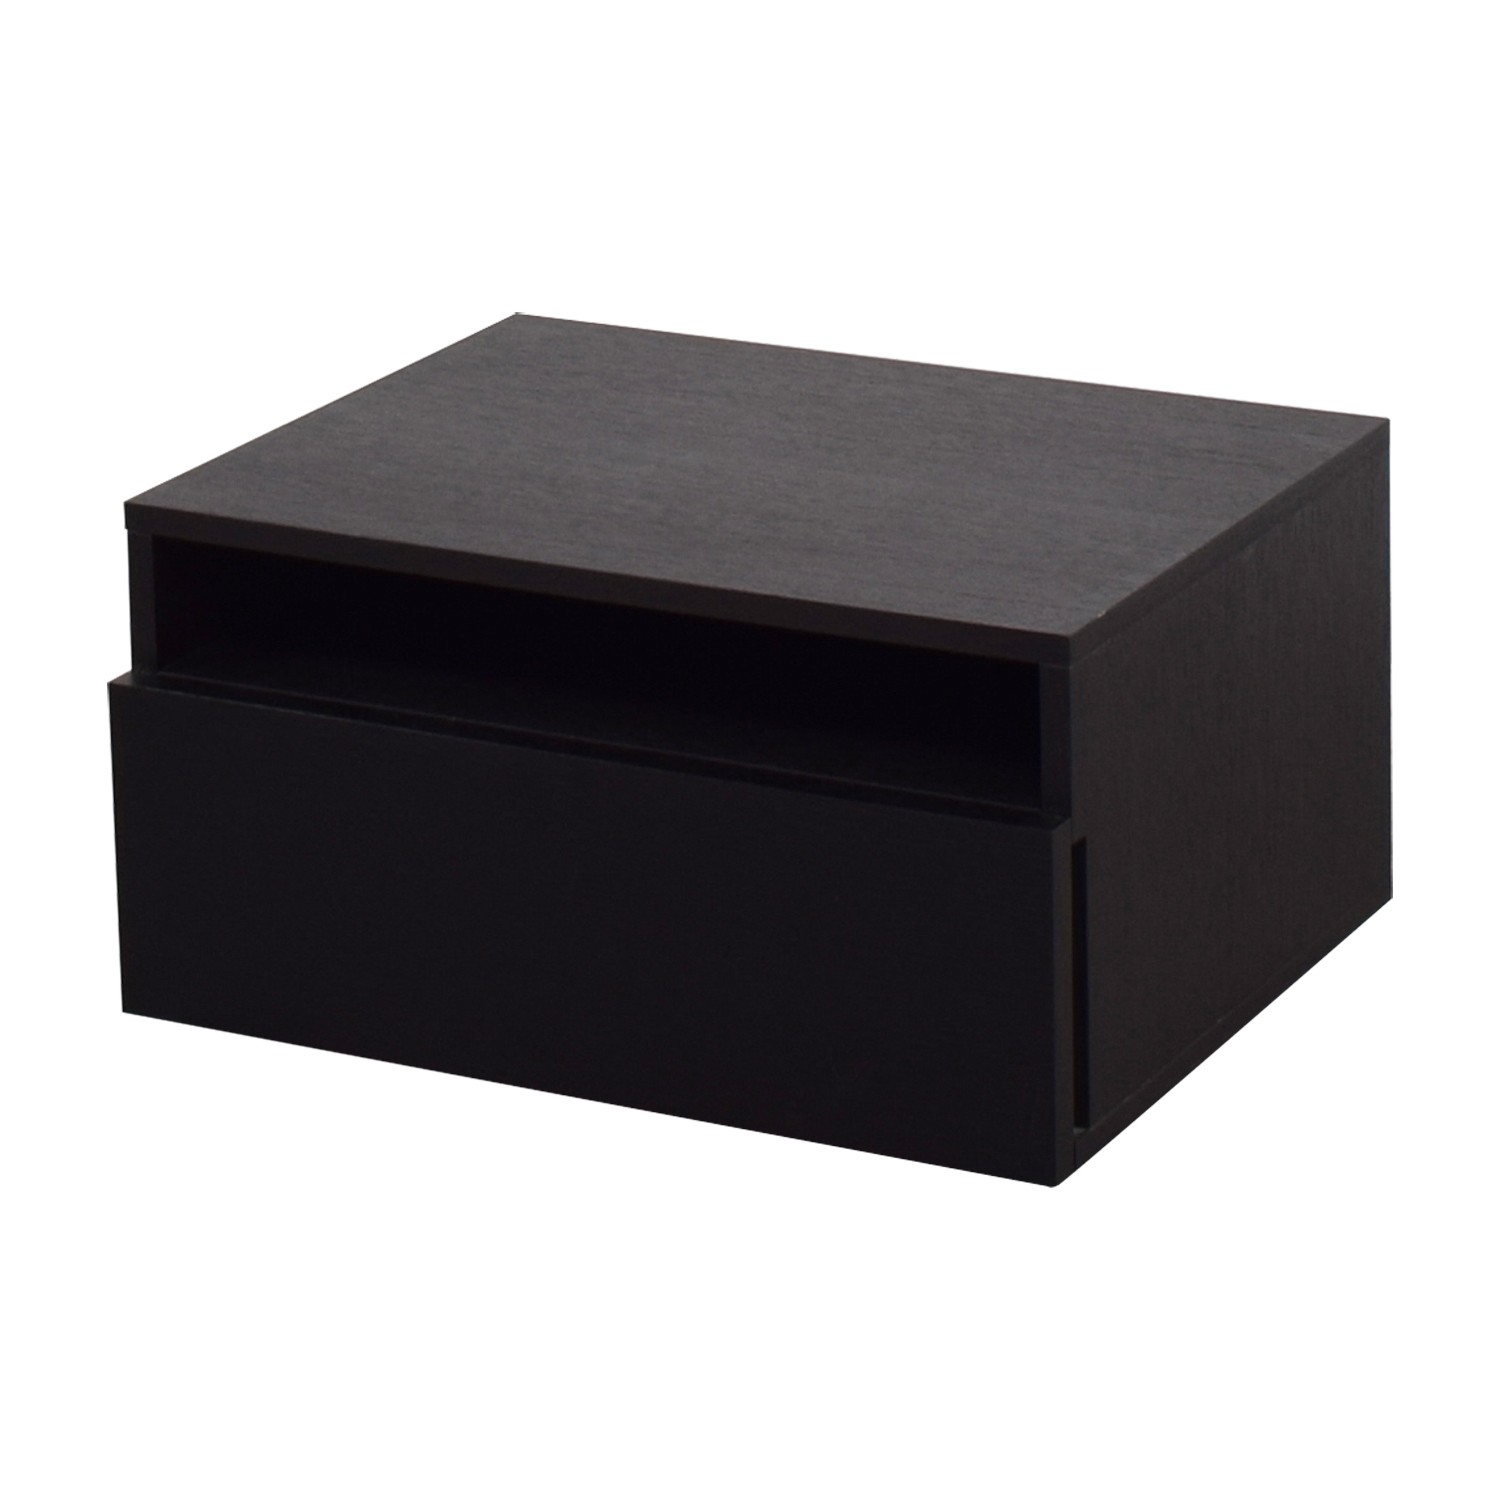 90 off design within reach design within reach side table tables. Black Bedroom Furniture Sets. Home Design Ideas